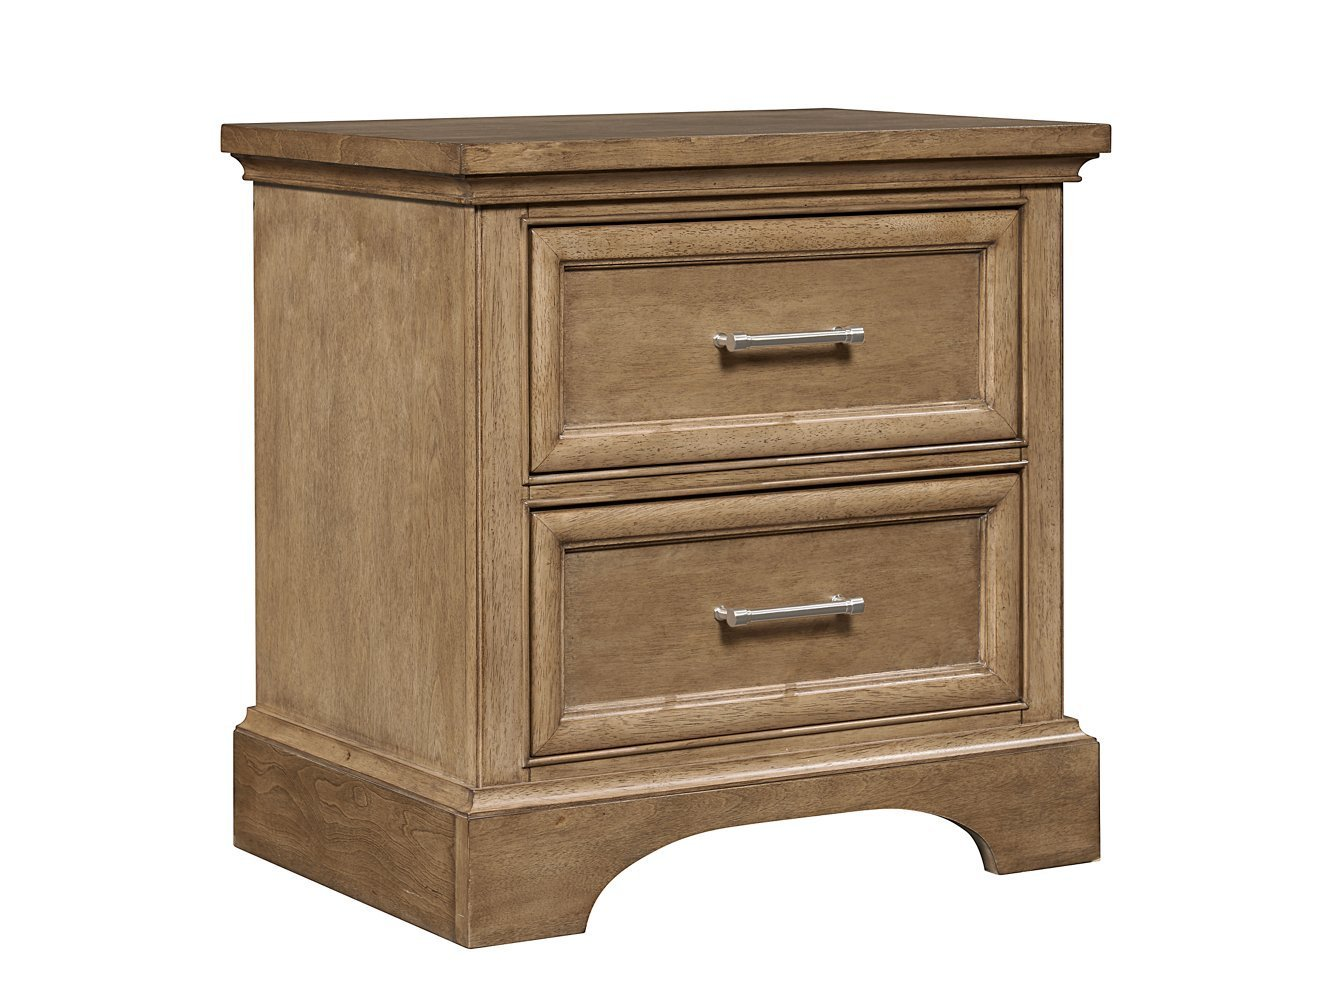 Stone & Leigh Chelsea Square 2 Drawer Nightstand in French Toast